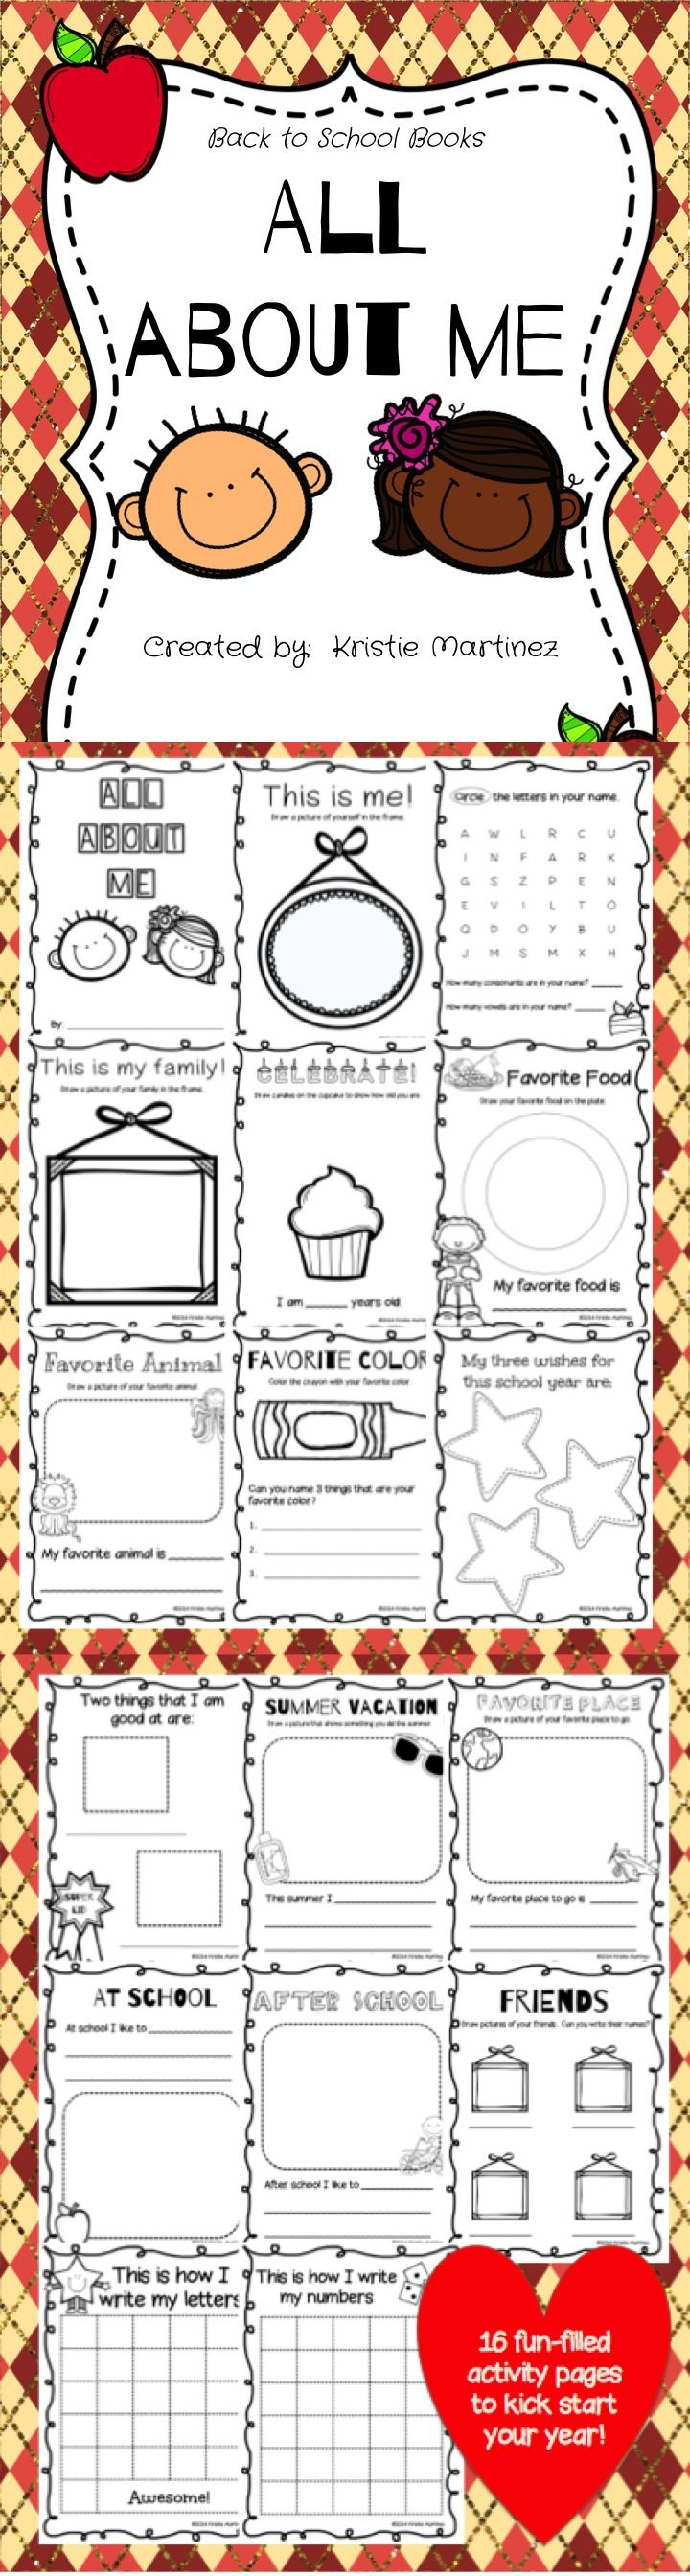 "This ""All About Me"" book is filled with 16 opportunities for your students to share about themselves. Upon the completion of this booklet, you will have gathered background information across various topics about each of your students. I hope that you will have as much fun learning about your students as they will completing this book!"